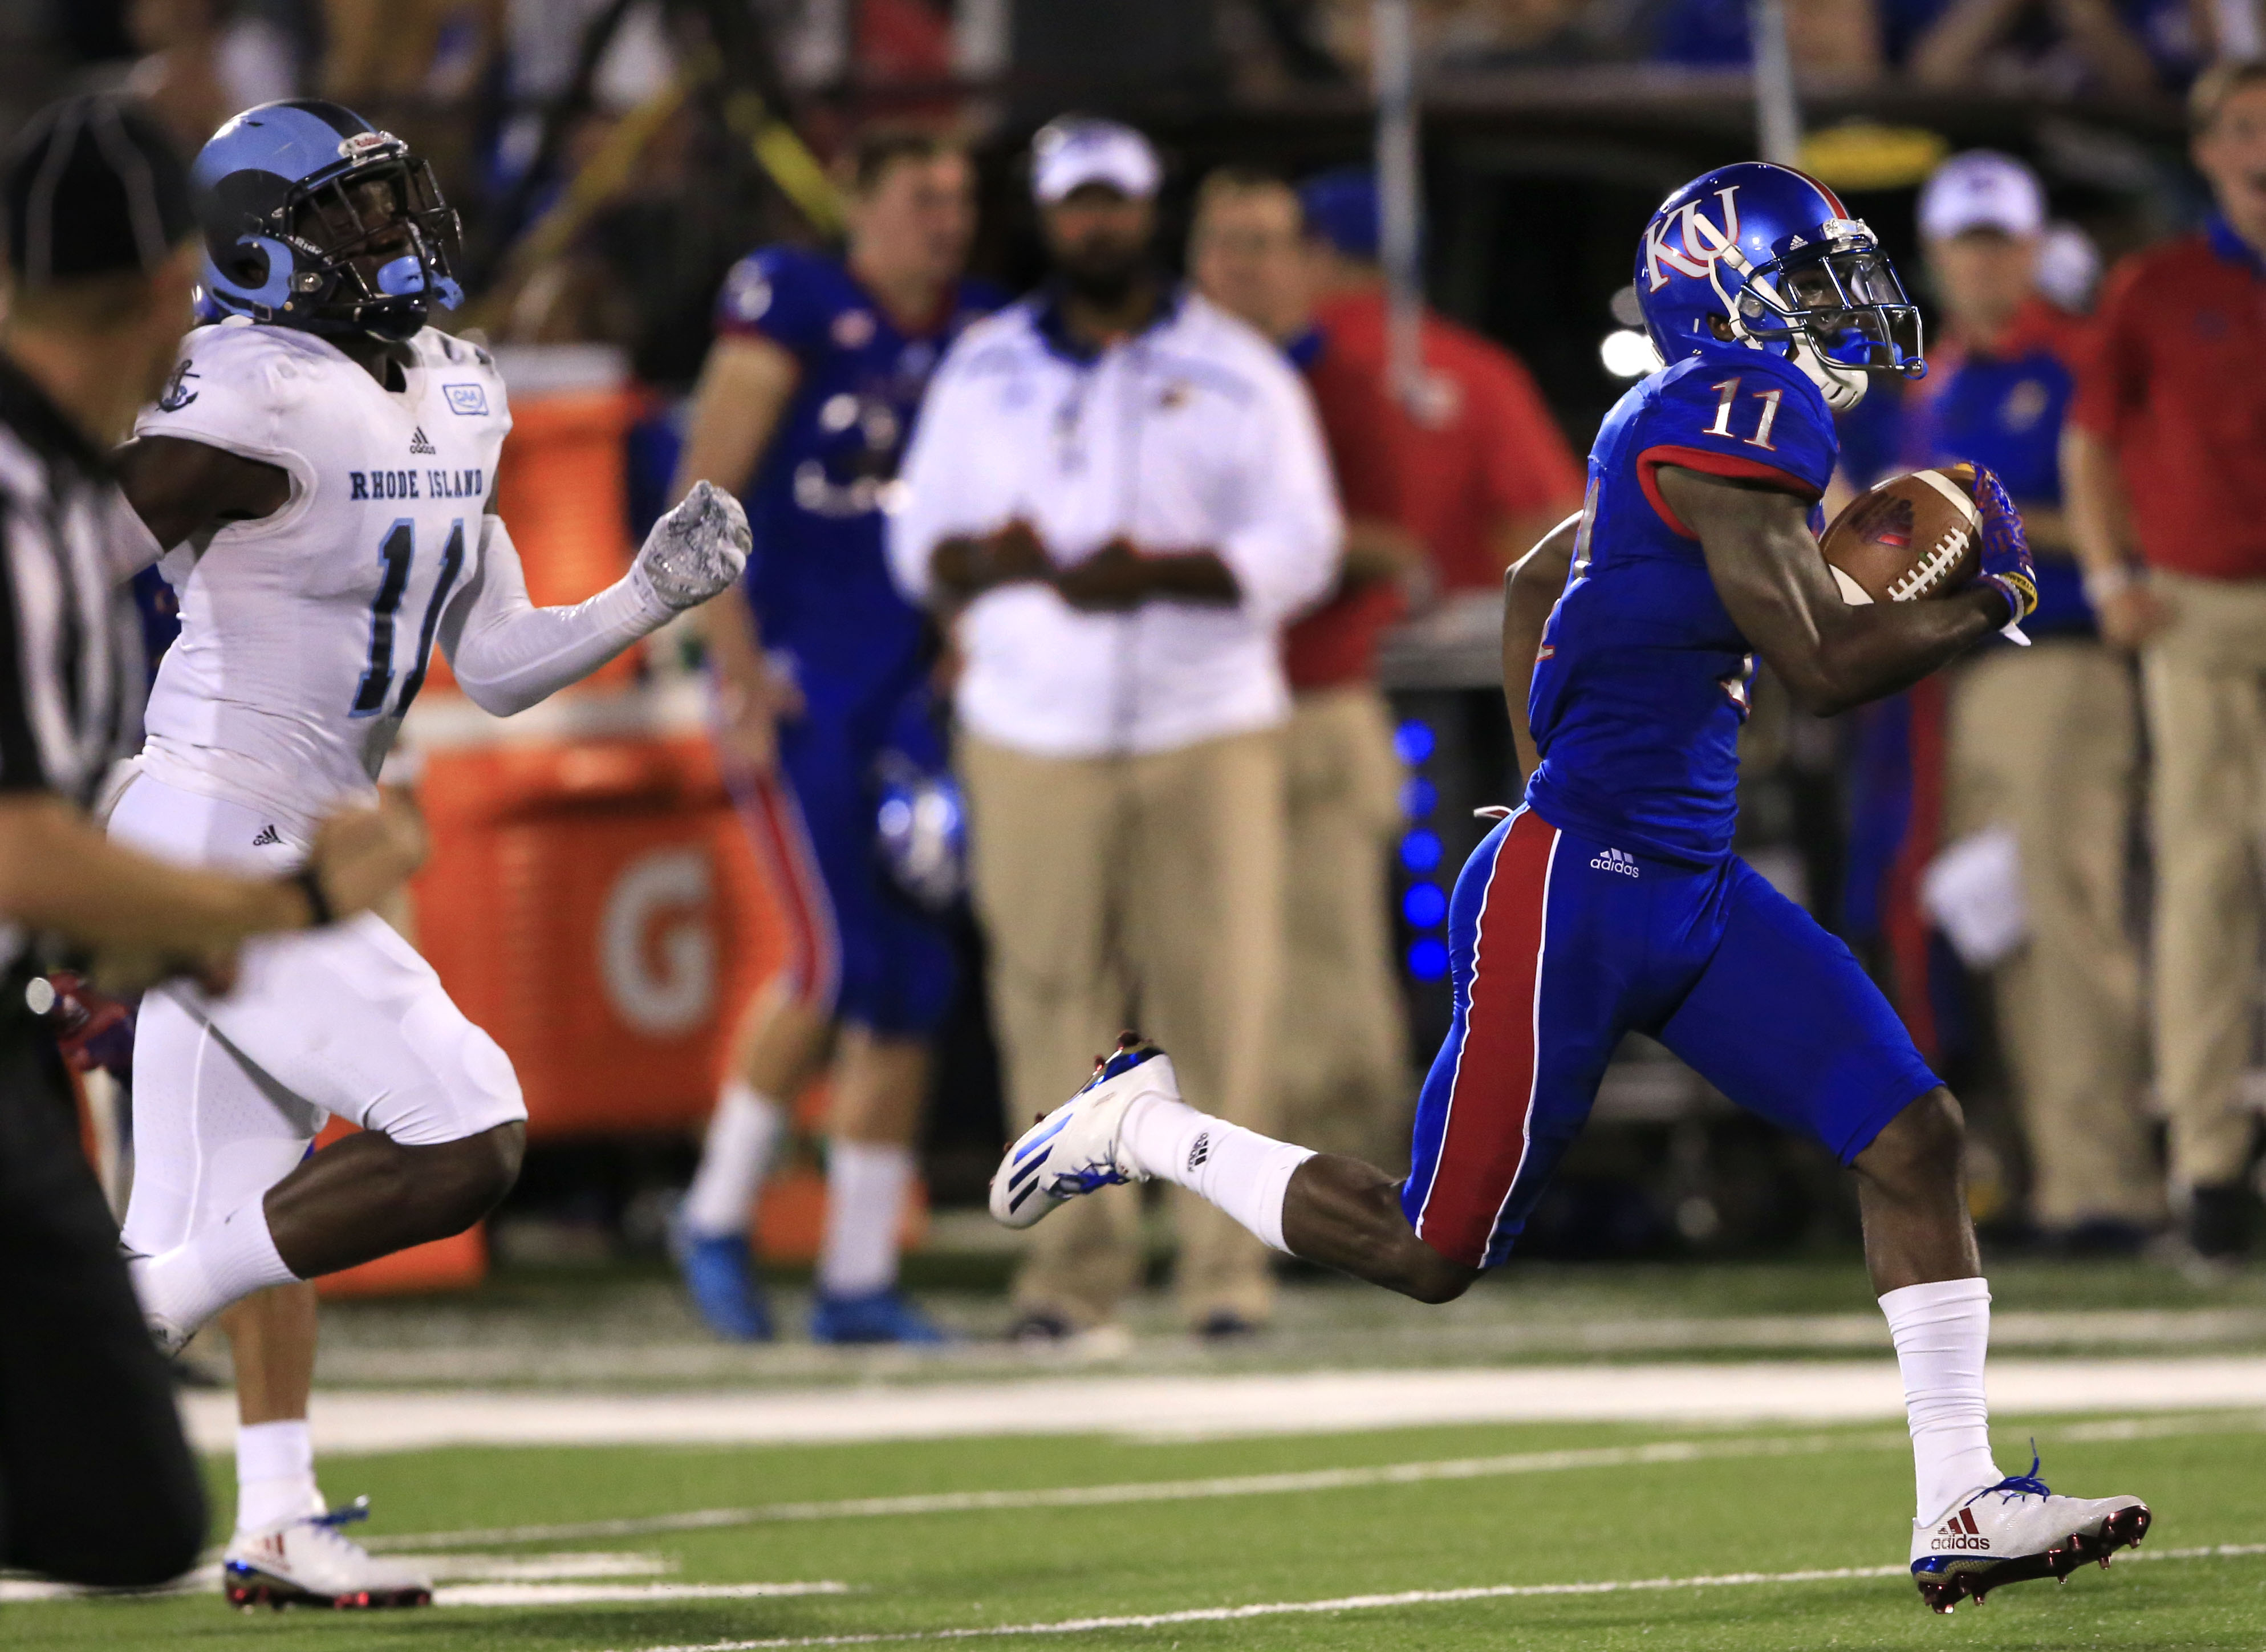 FILE - In this Sept. 3, 2016, file photo, Kansas wide receiver Steven Sims Jr. (11) runs for a touchdown past Rhode Island defensive back D.J. Stewart (11) during the second half of an NCAA college football game in Lawrence, Kan. Kansas is still trying to